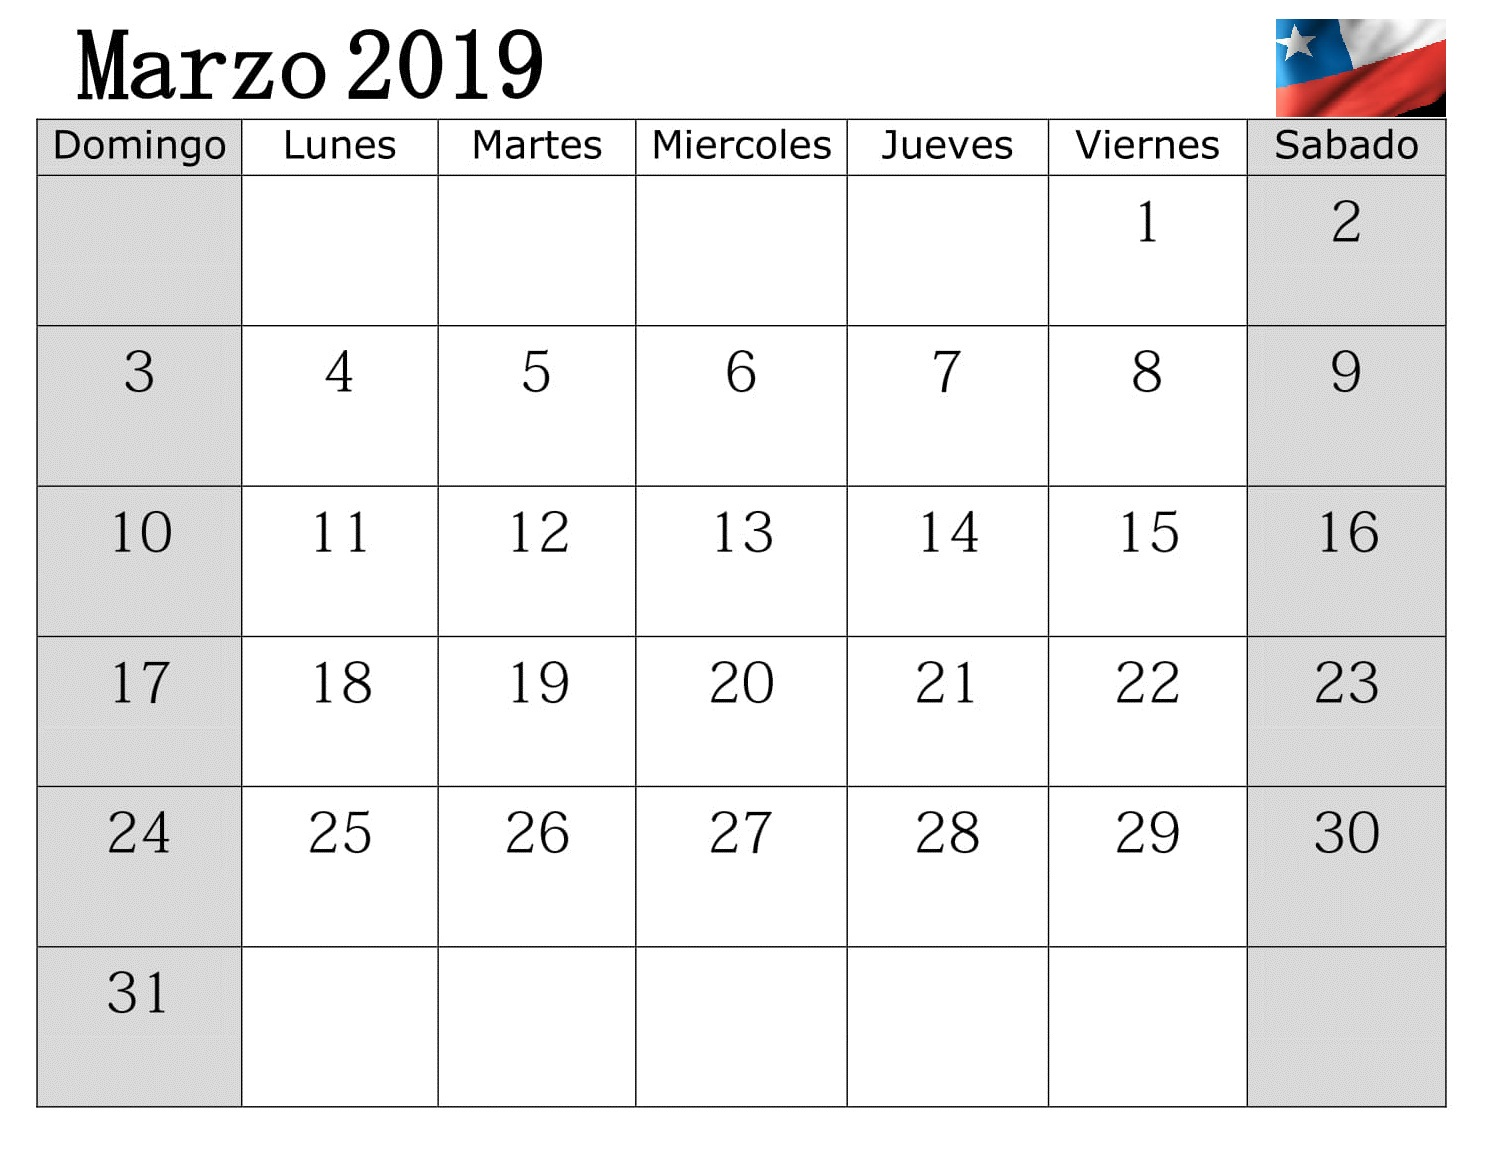 Calendario Chile 2019.Calendario 2019 Marzo Chile Con Festivos Download Free